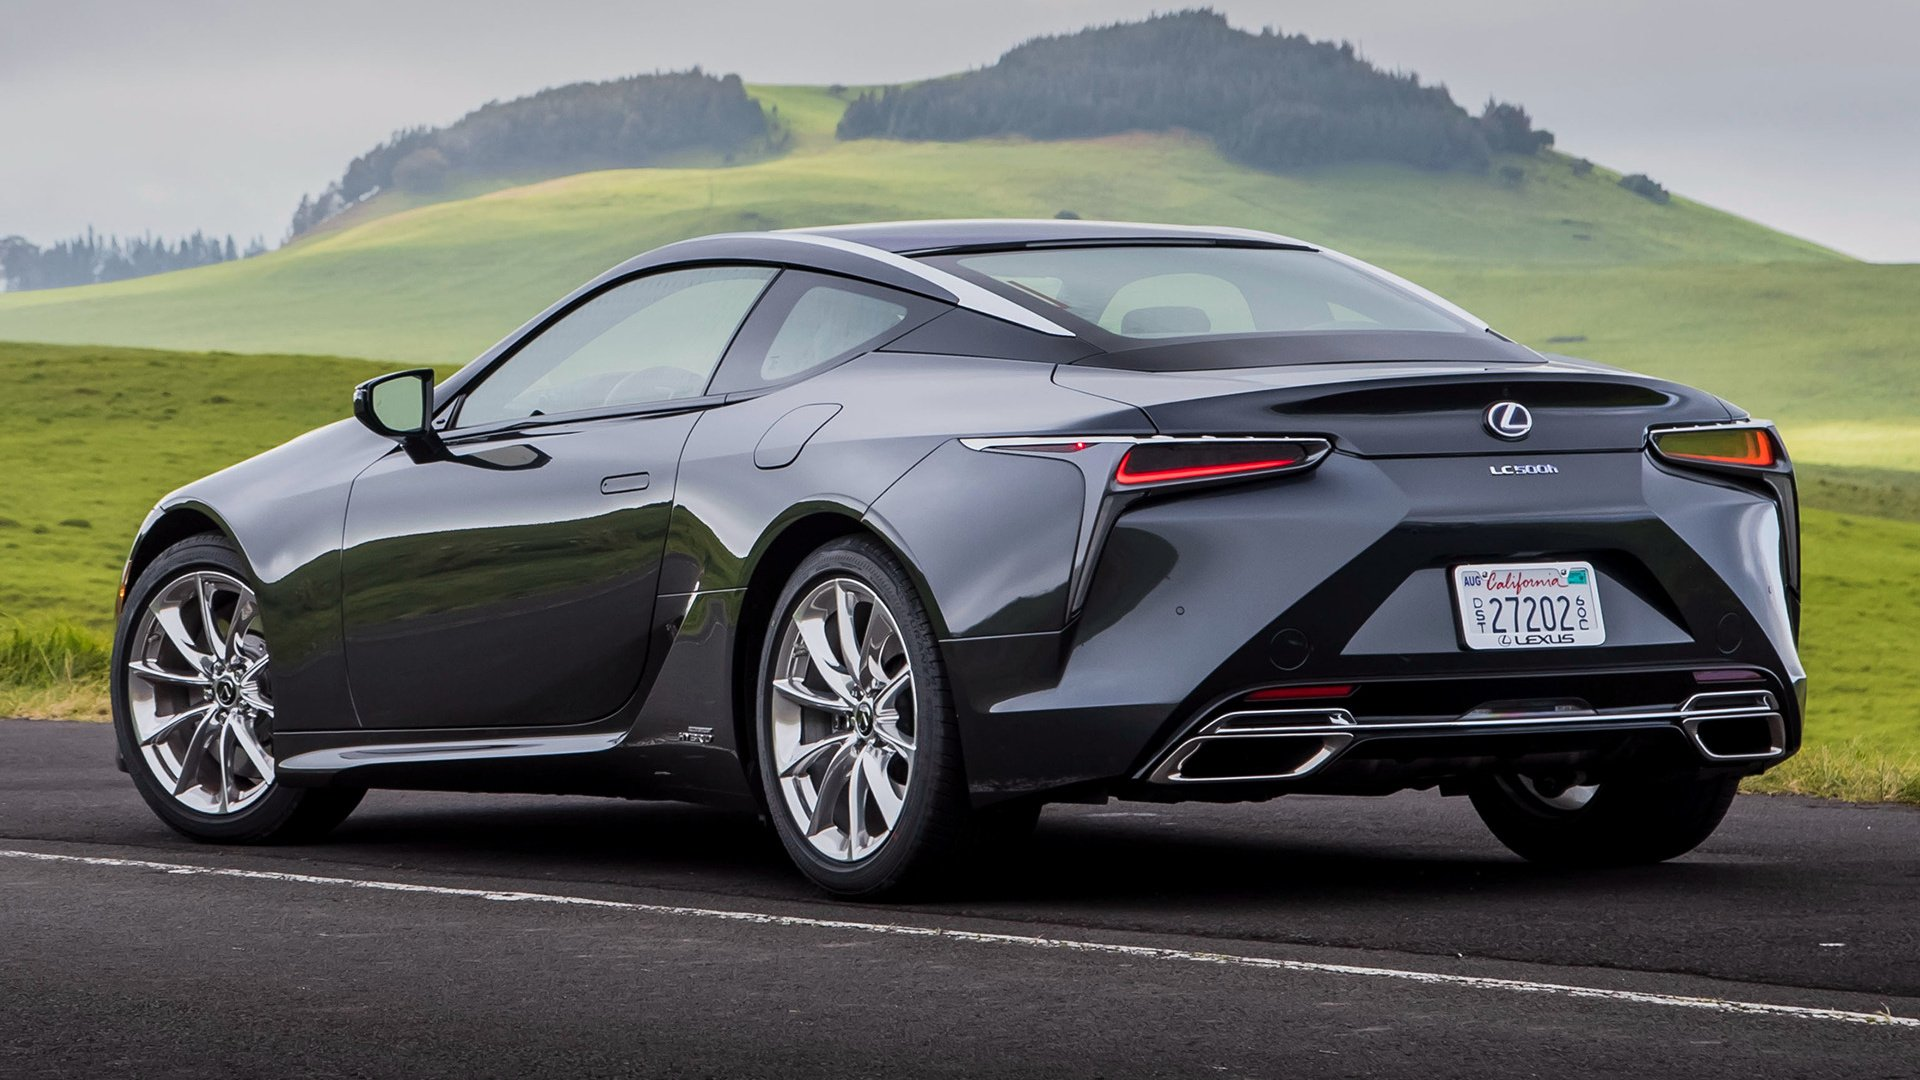 2018 Lexus LC 500h Hybrid Car HD Wallpaper